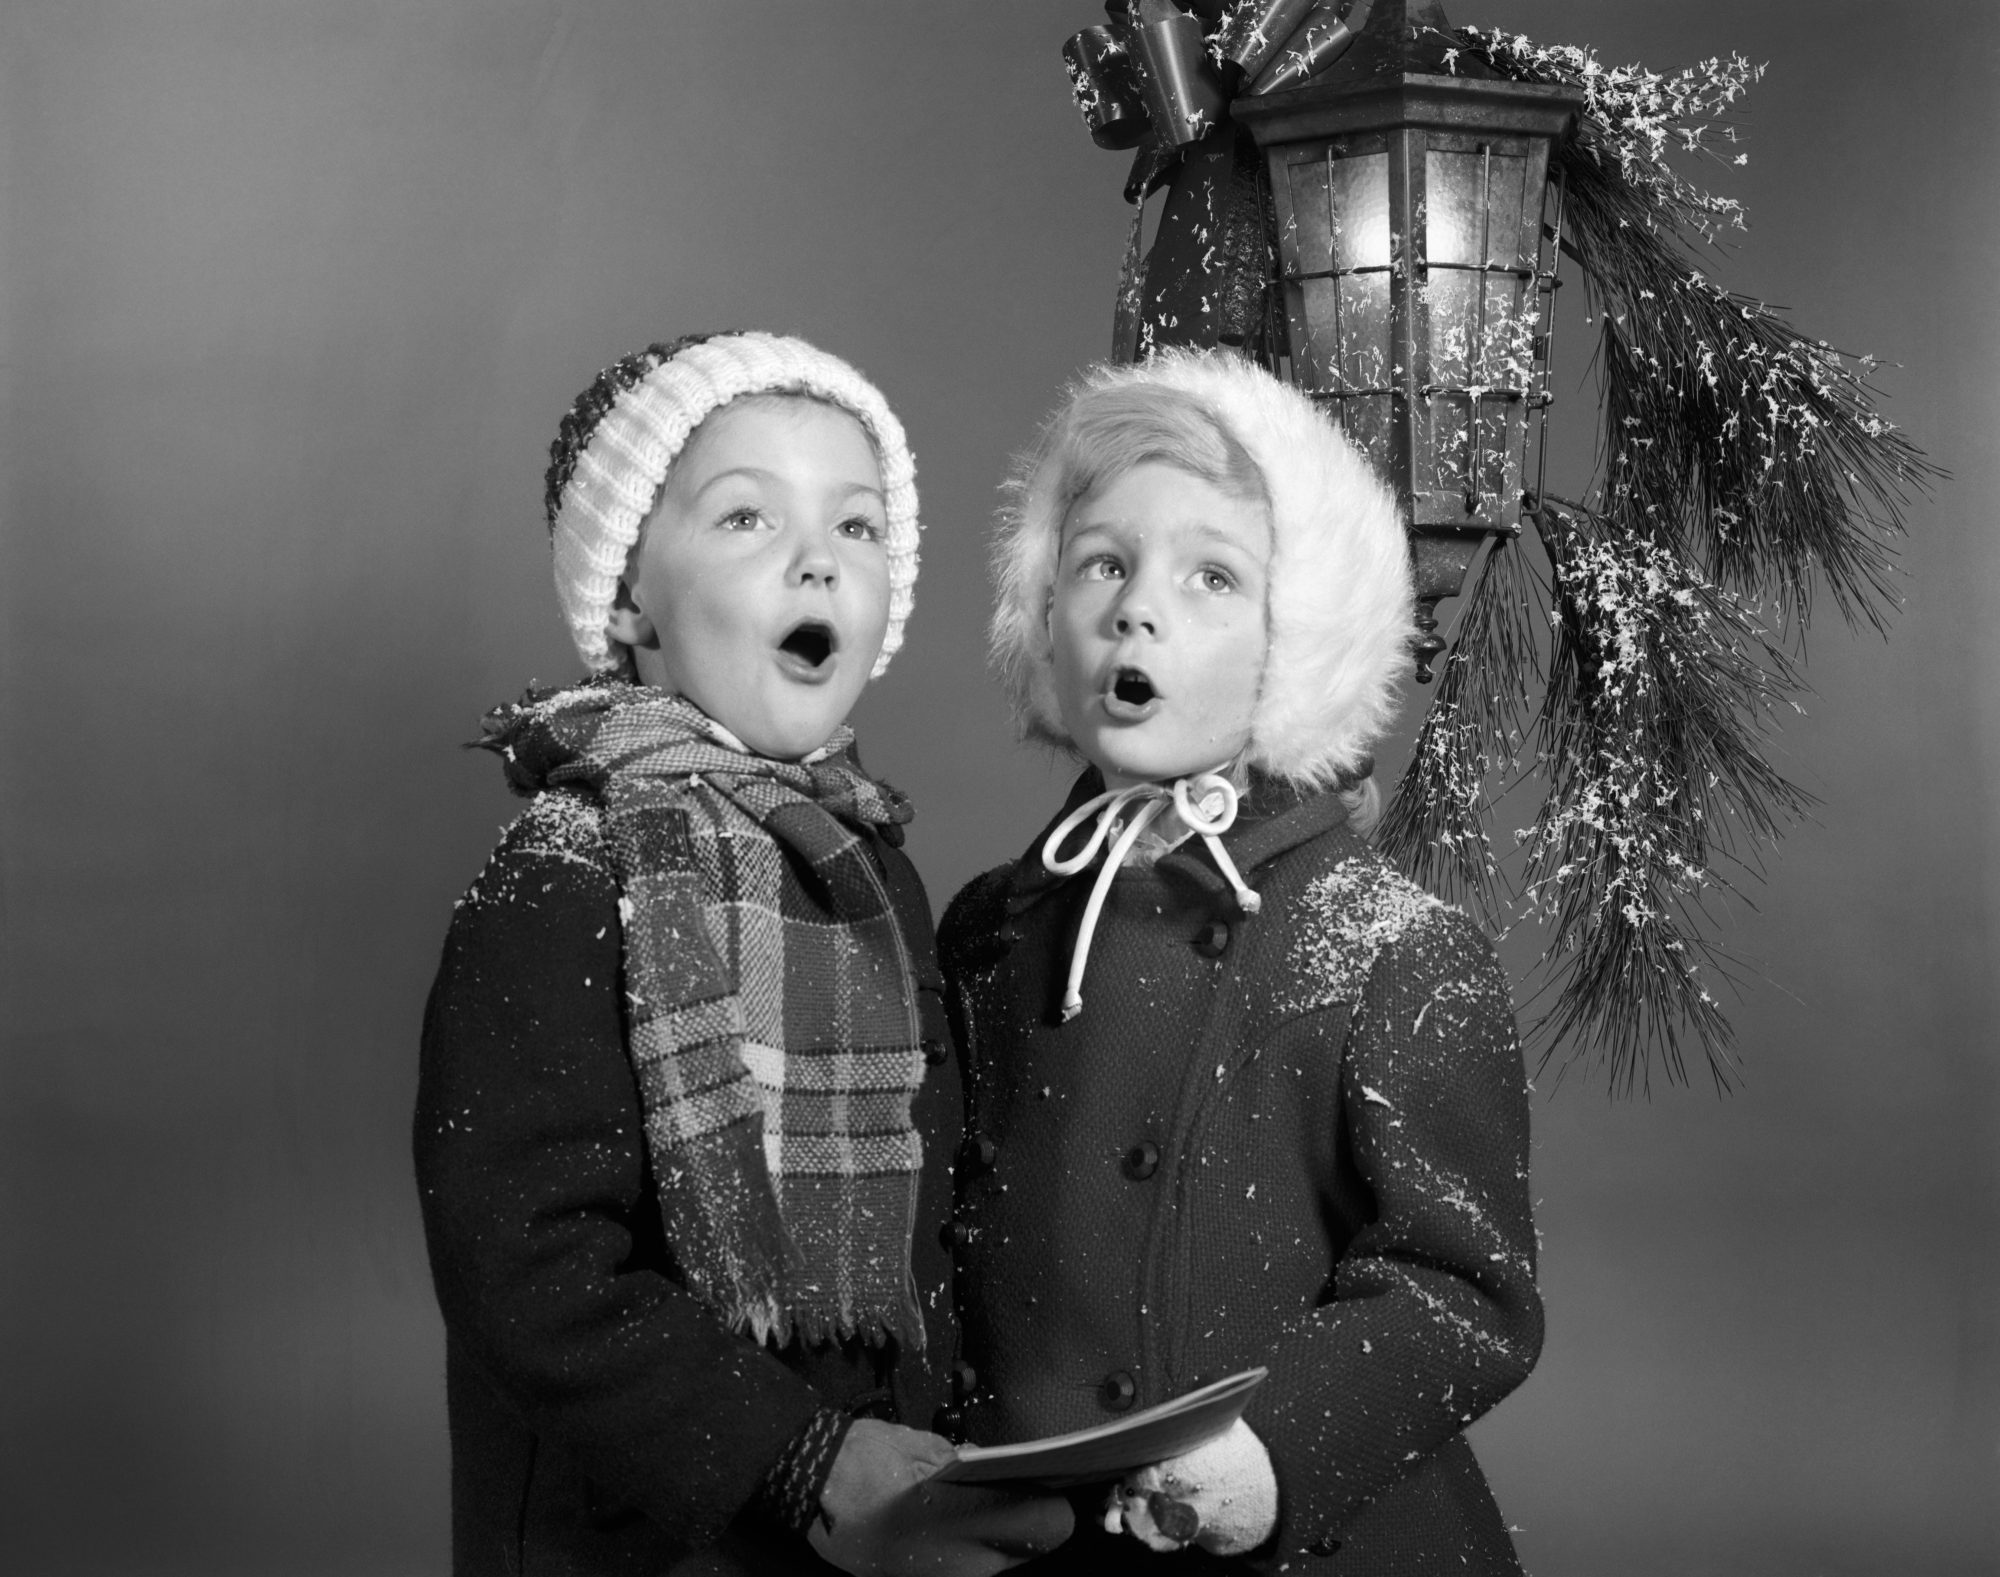 Vintage Boy and Girl Singing Christmas Carols